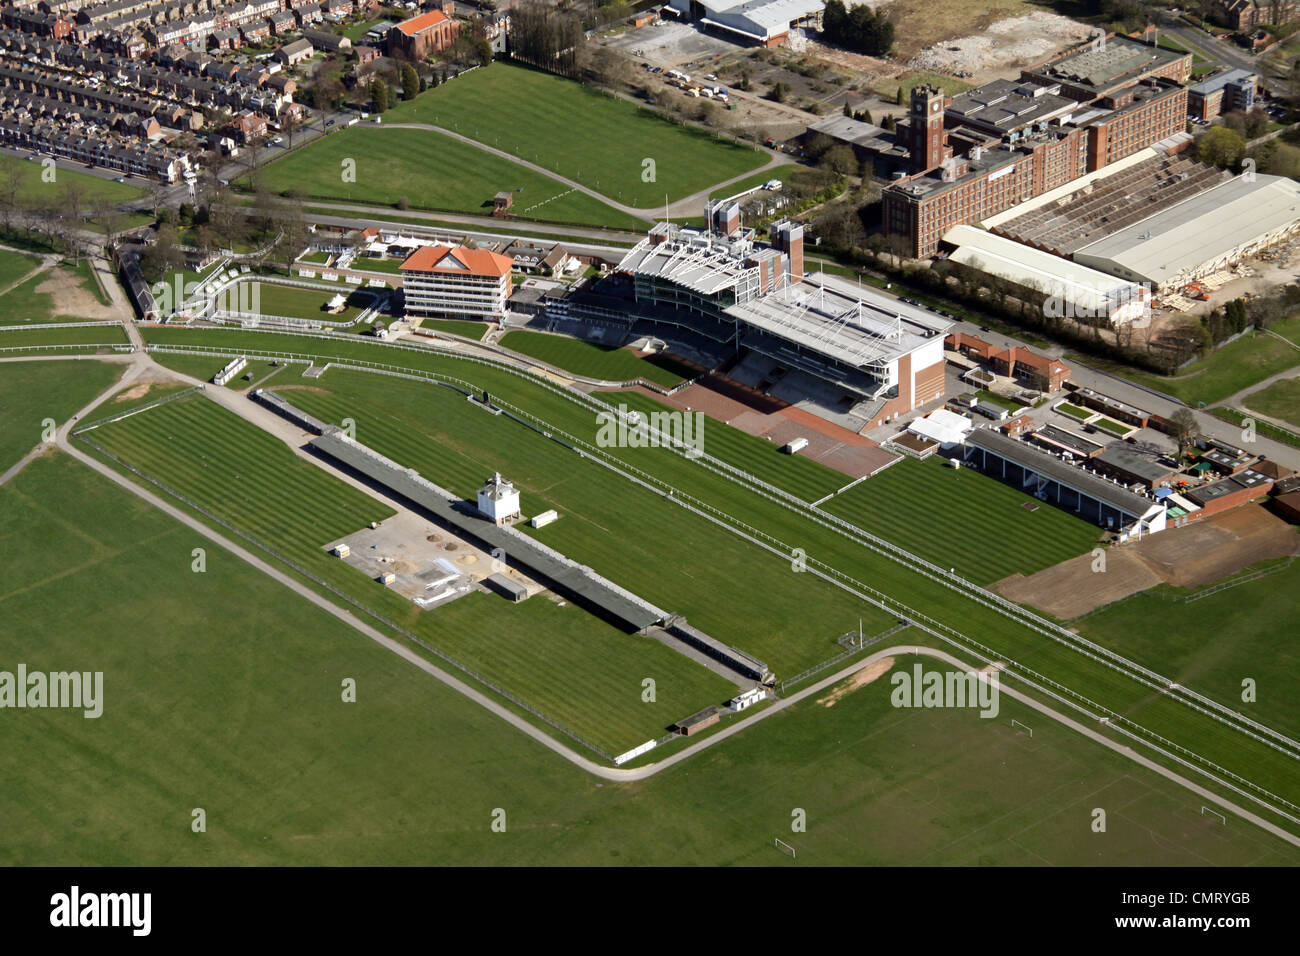 Grandstand Stock Photos Amp Grandstand Stock Images Alamy